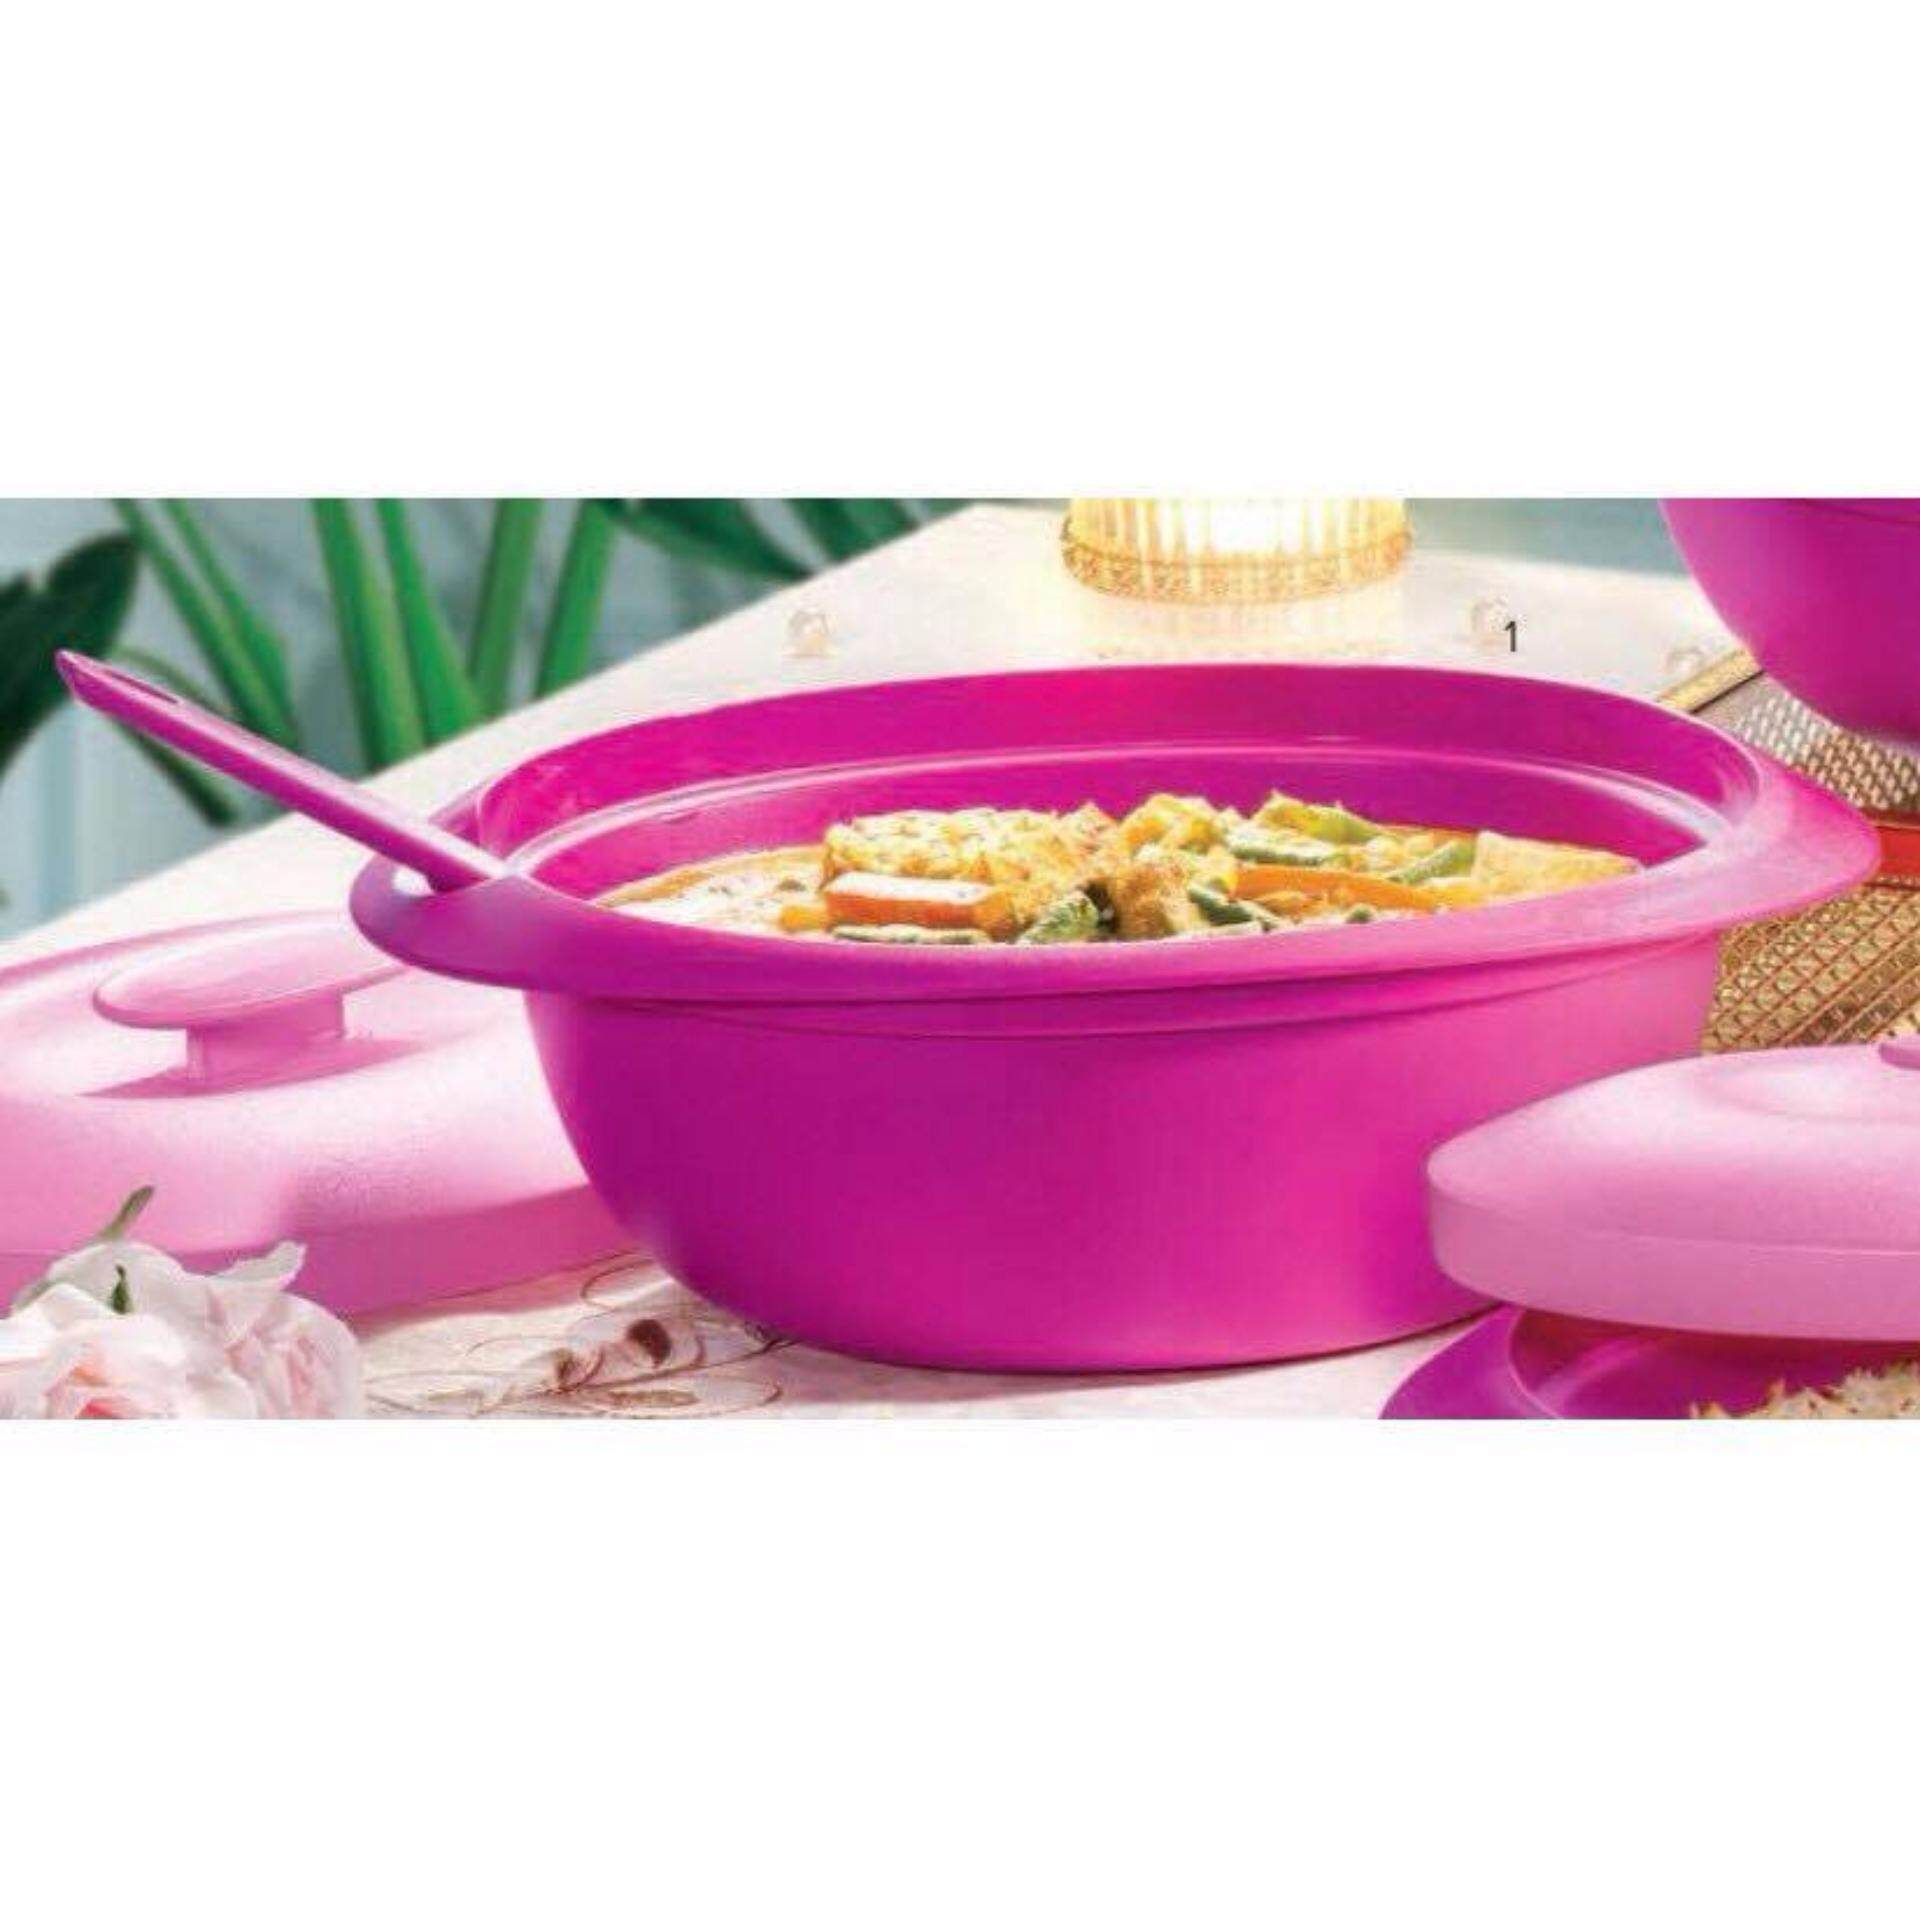 Tupperware Pink Blossom Soup Server (1) 1.8L and Soup Ladle (1)